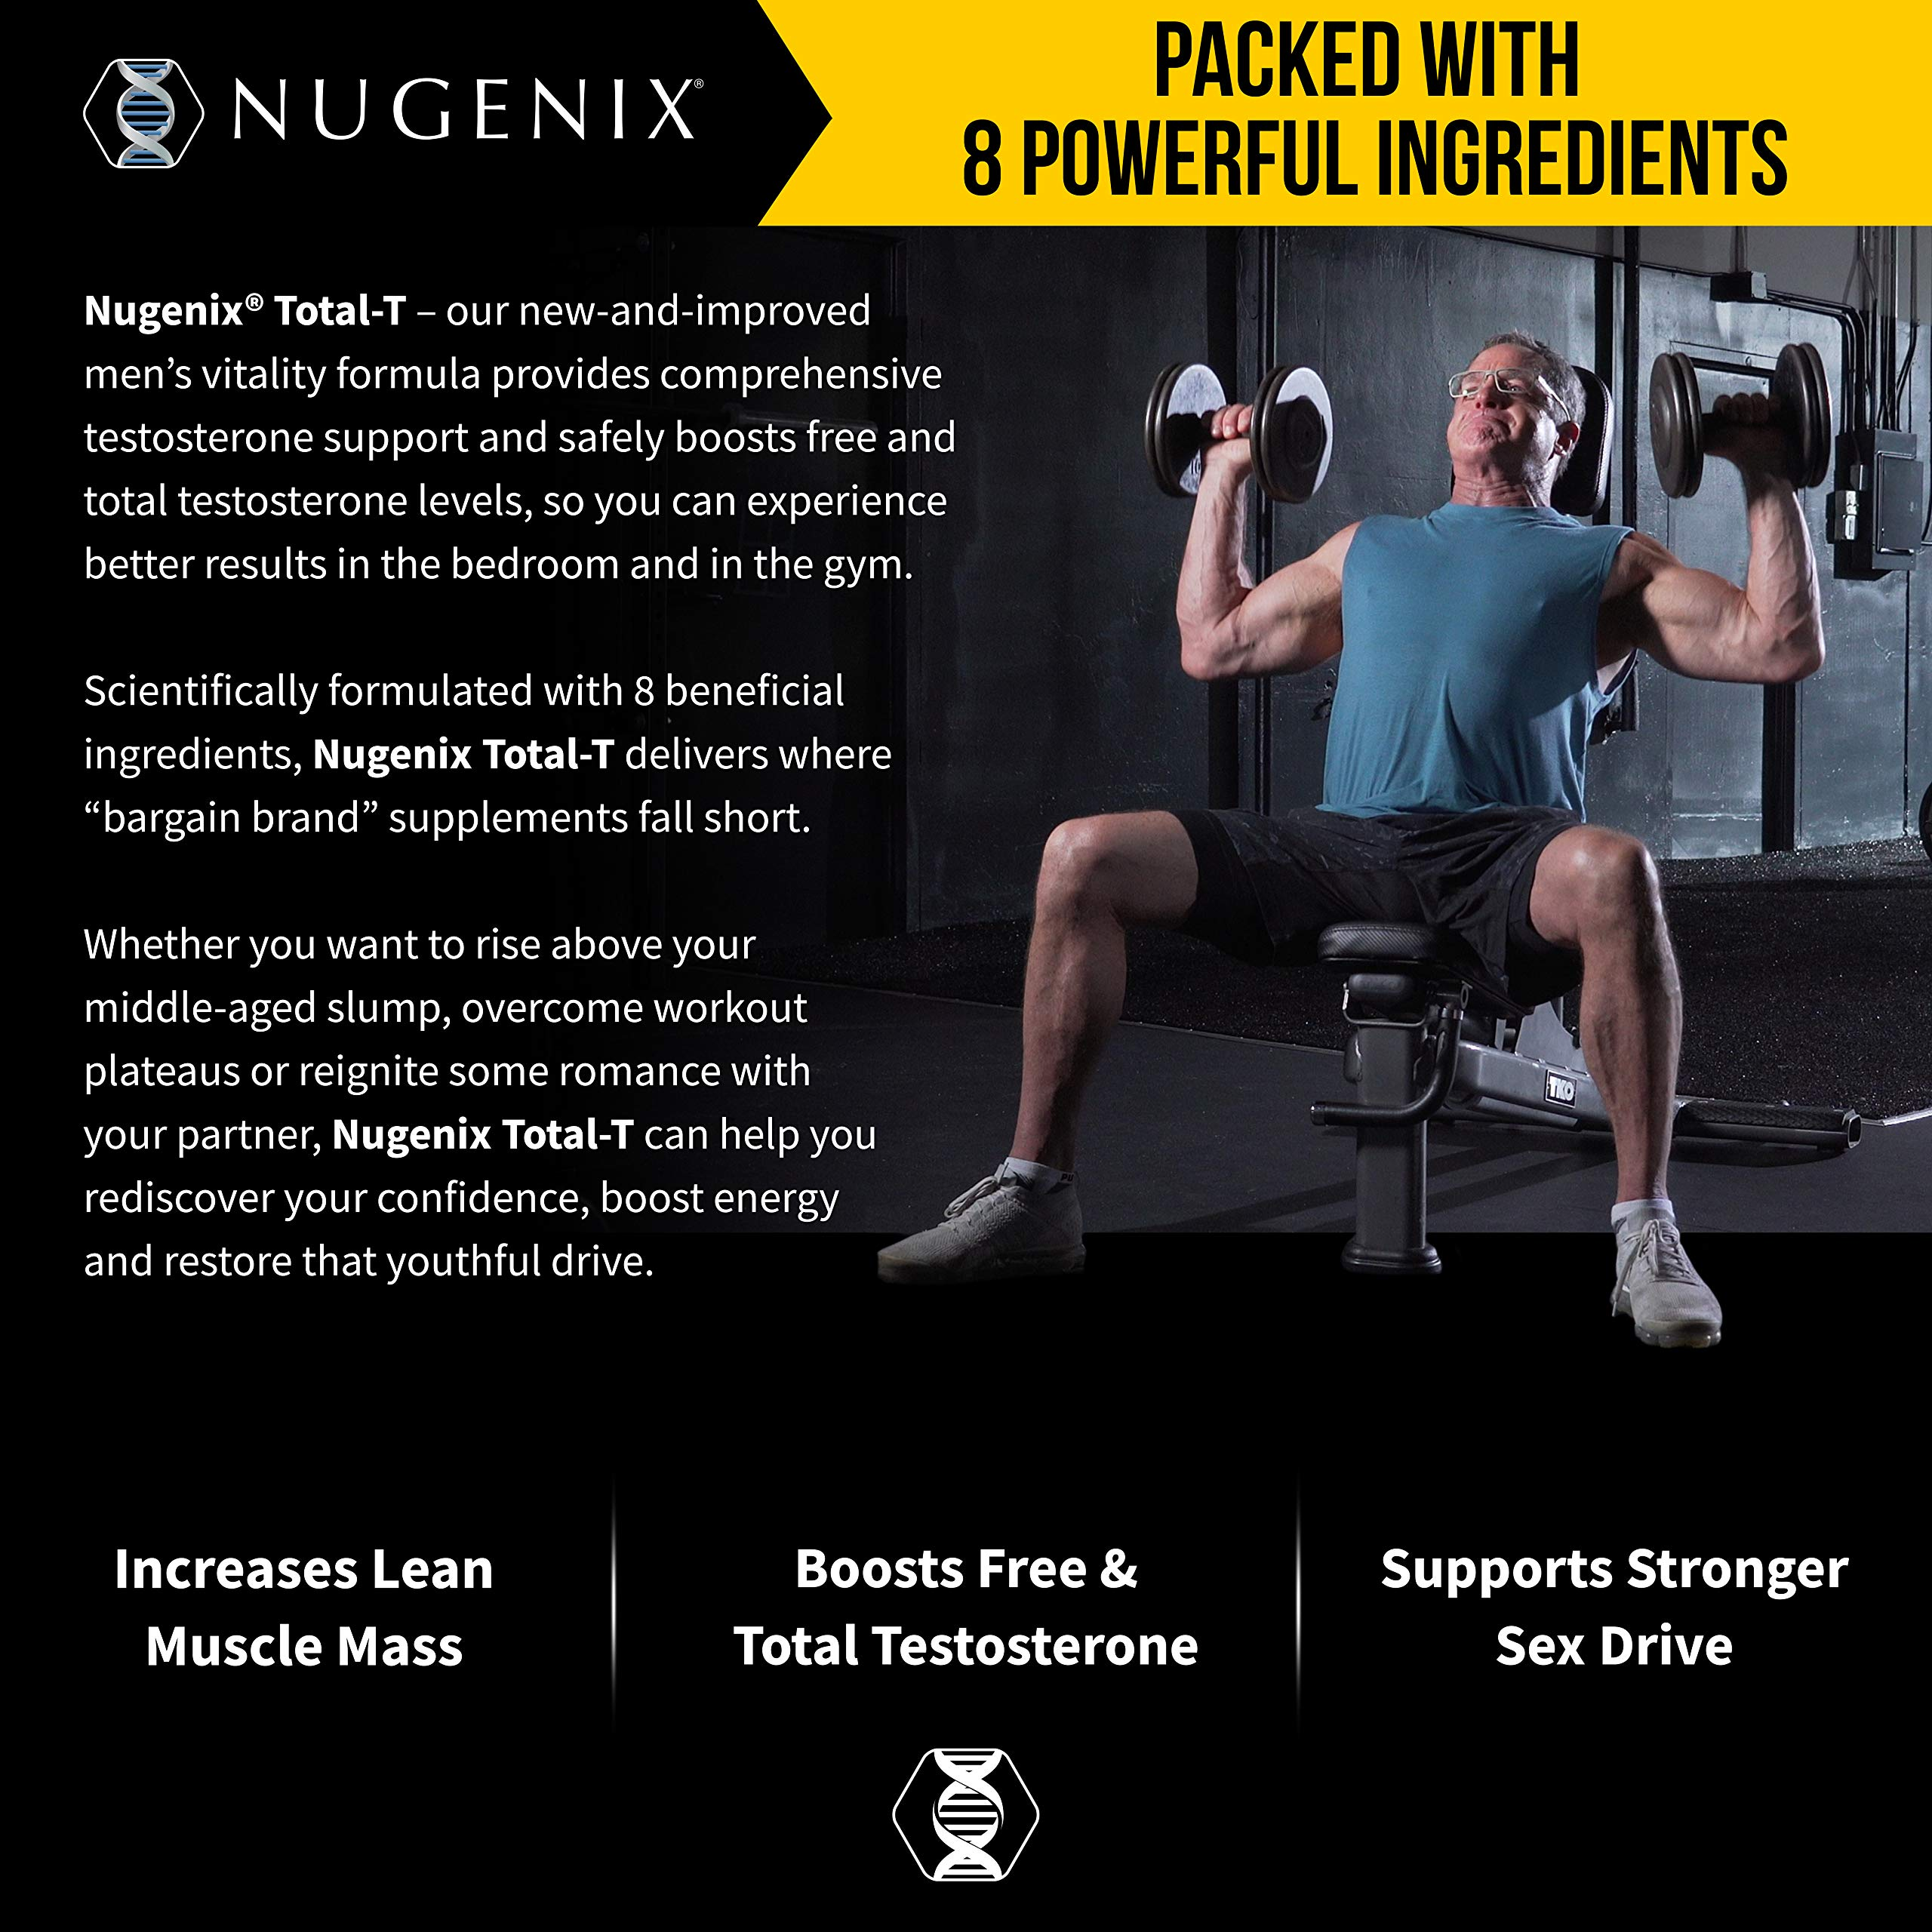 Nugenix Total-T: Men's Total Testosterone Boosting Formula. All New, High Potency, High Bioavailibility Testosterone Boosting Ingredients. Helps with Energy, Muscle, Libido, Stamina, and Drive by Nugenix (Image #8)